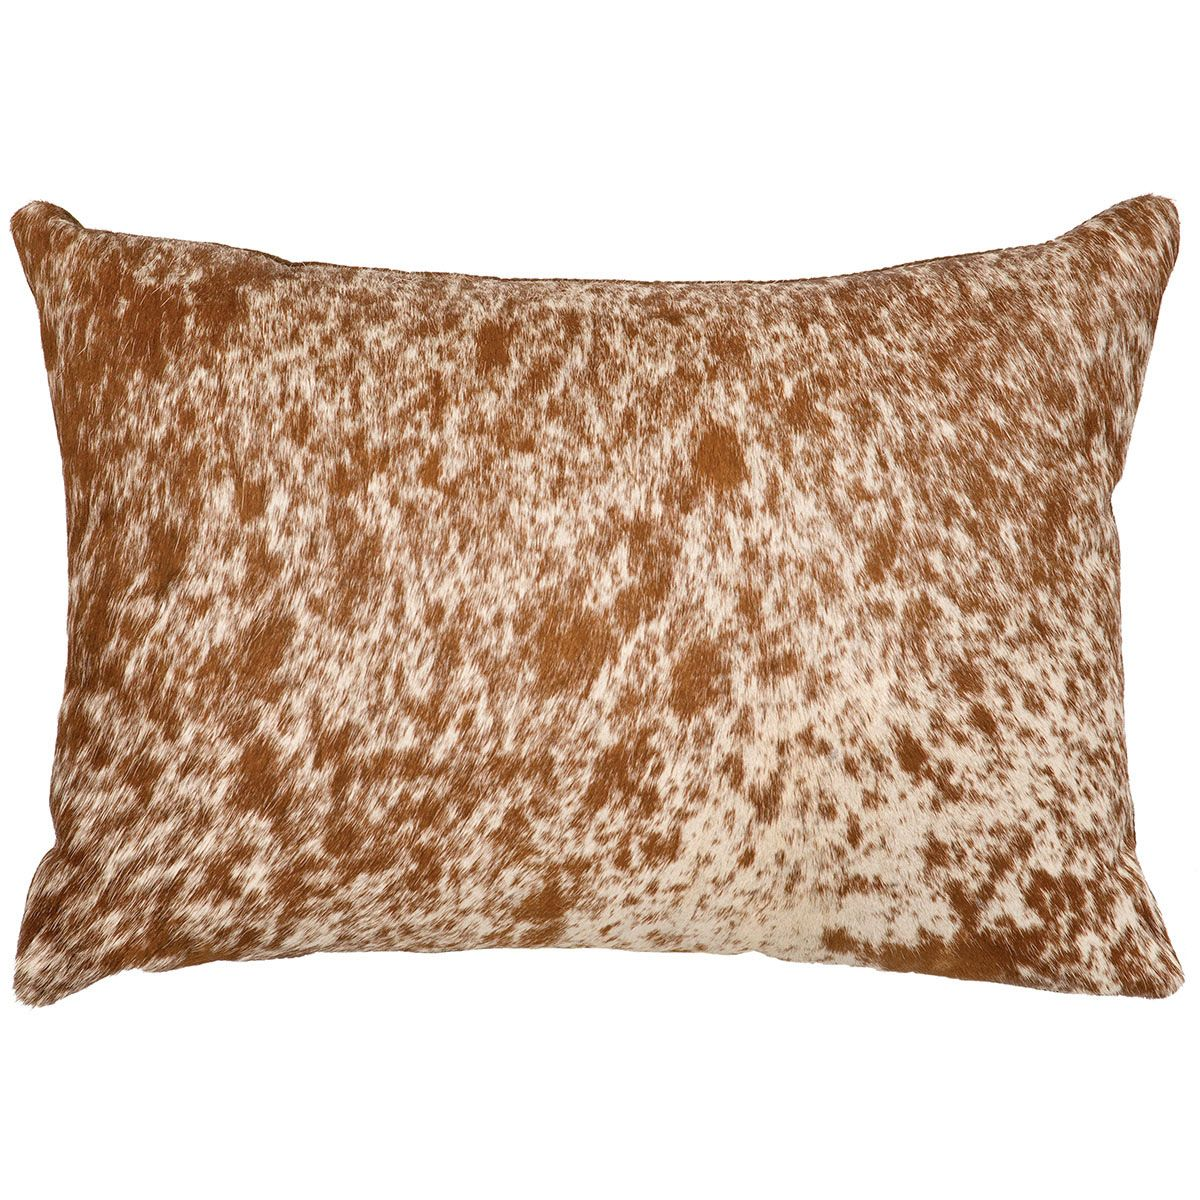 Dark Brown Speckled Hair on Hide Pillow